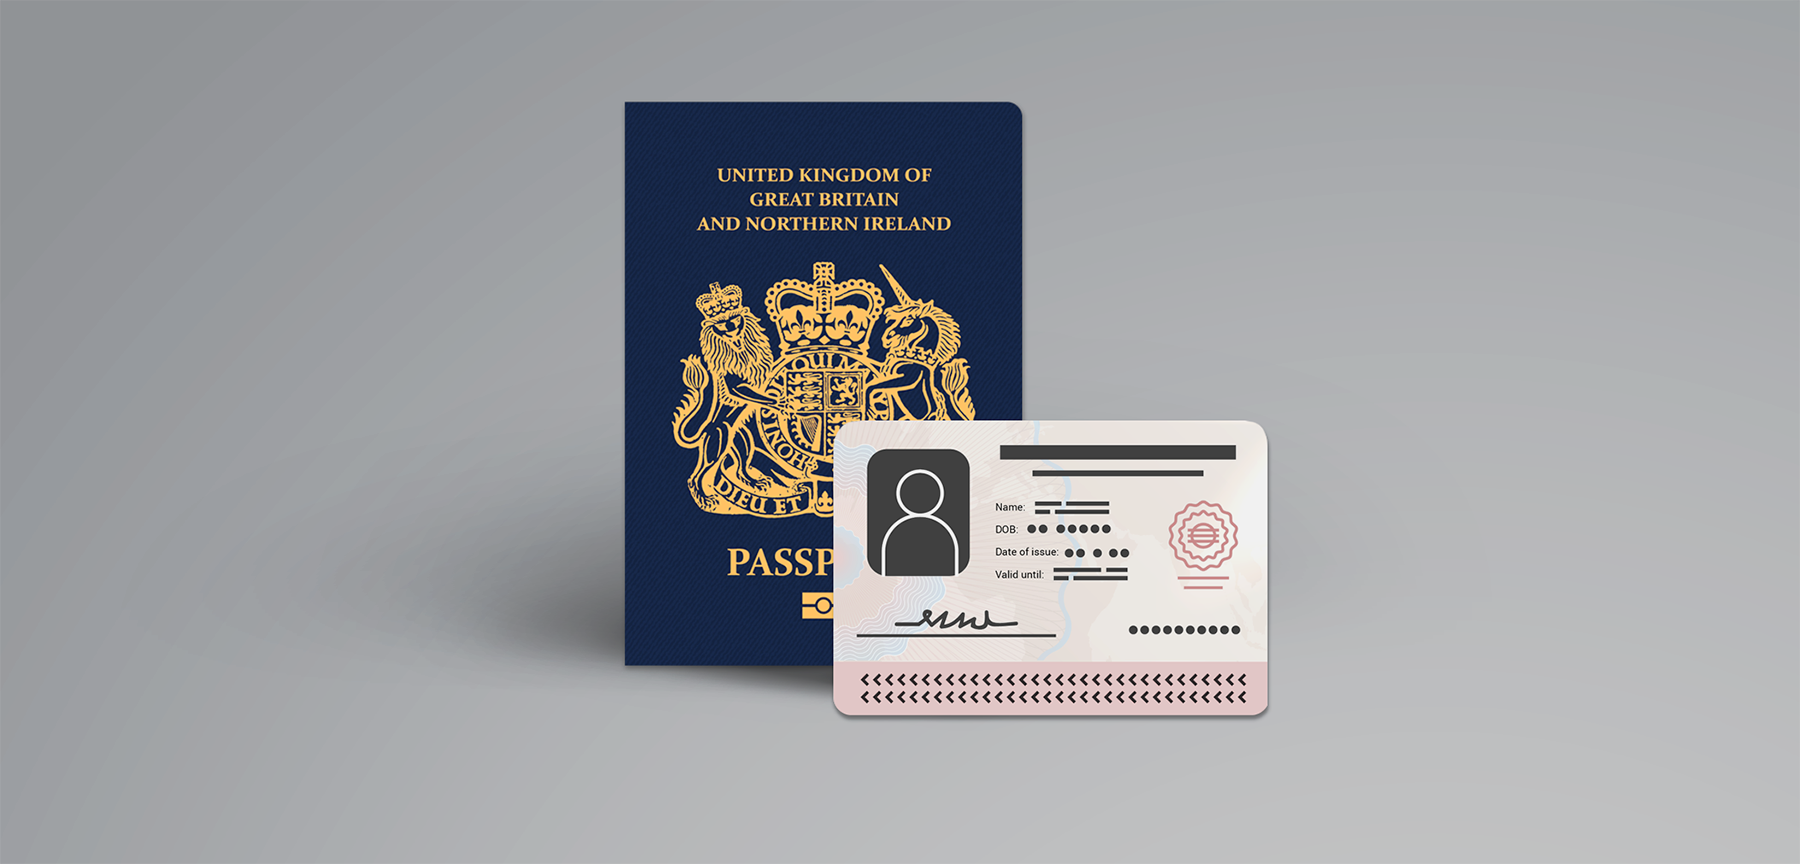 Changes to British passports are being phased in from this month